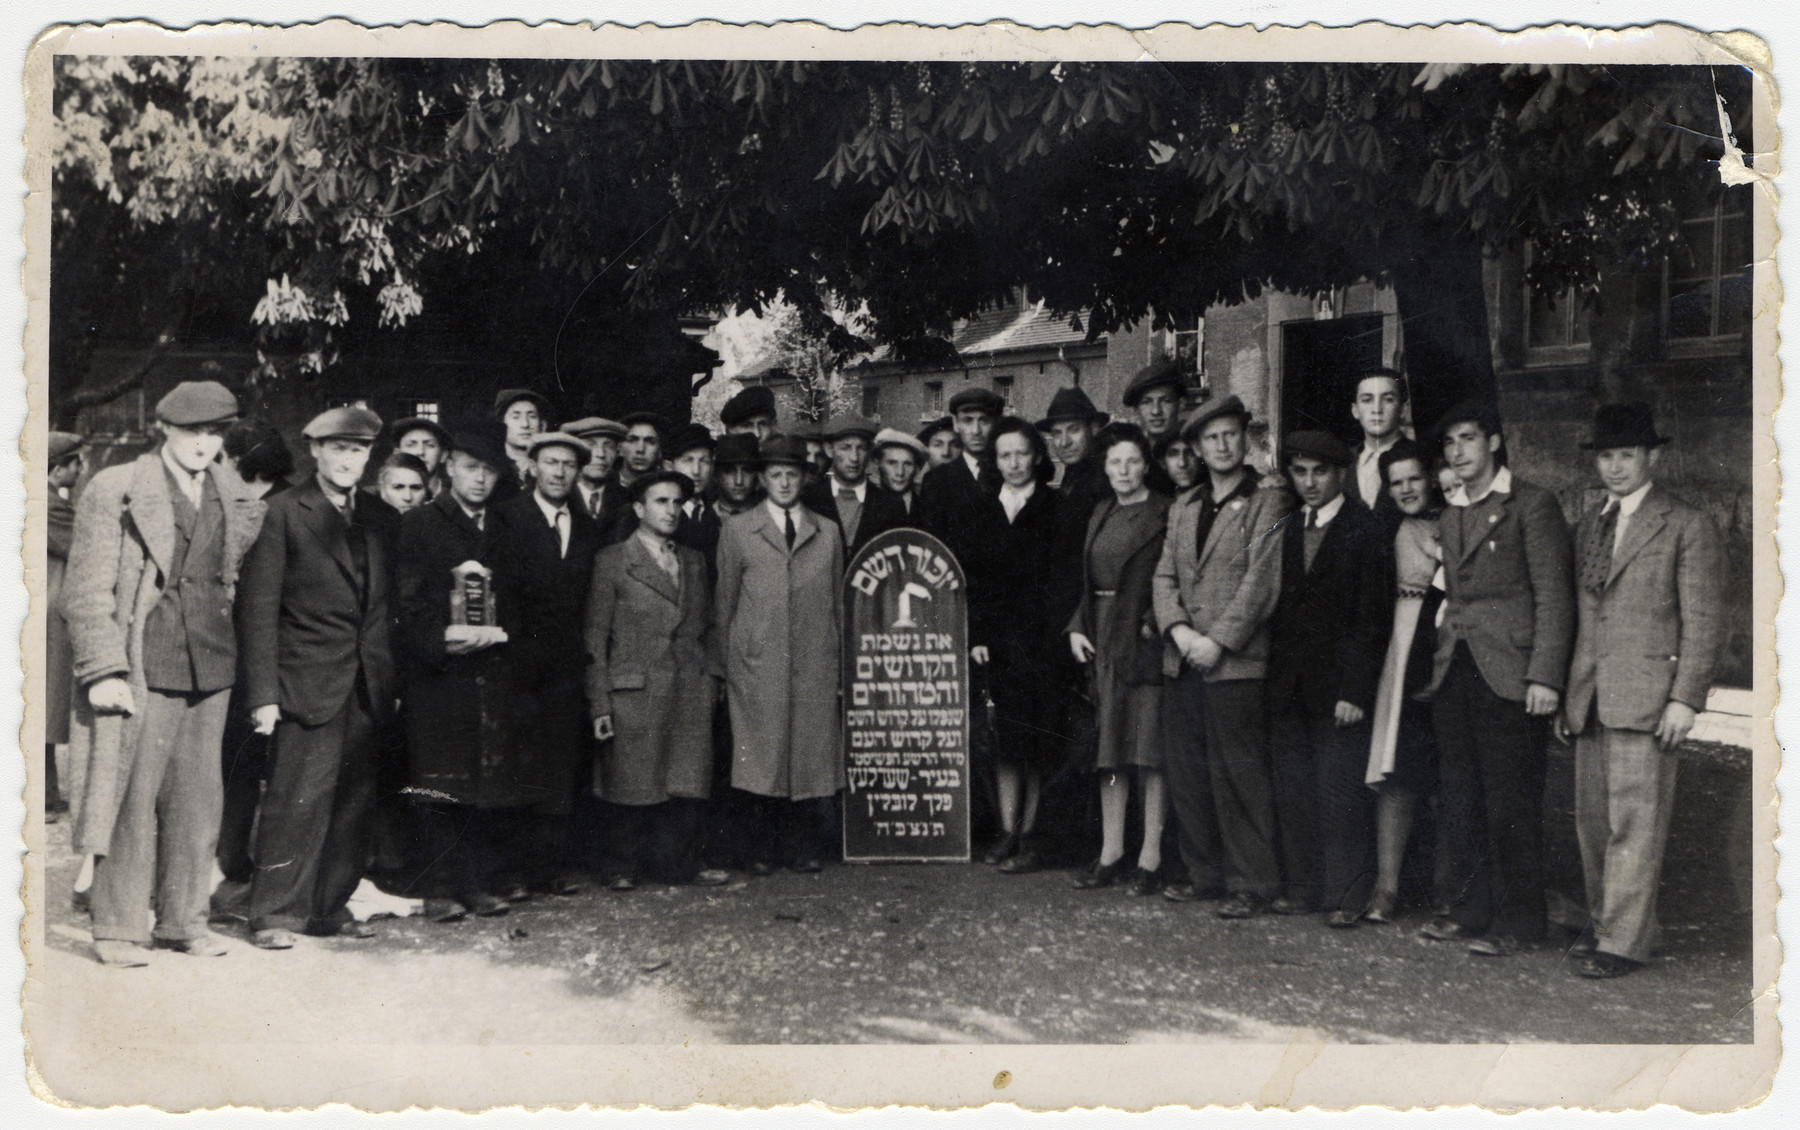 Survivors from Siedlce gather for a memorial service for victims of the Holocaust from their city.